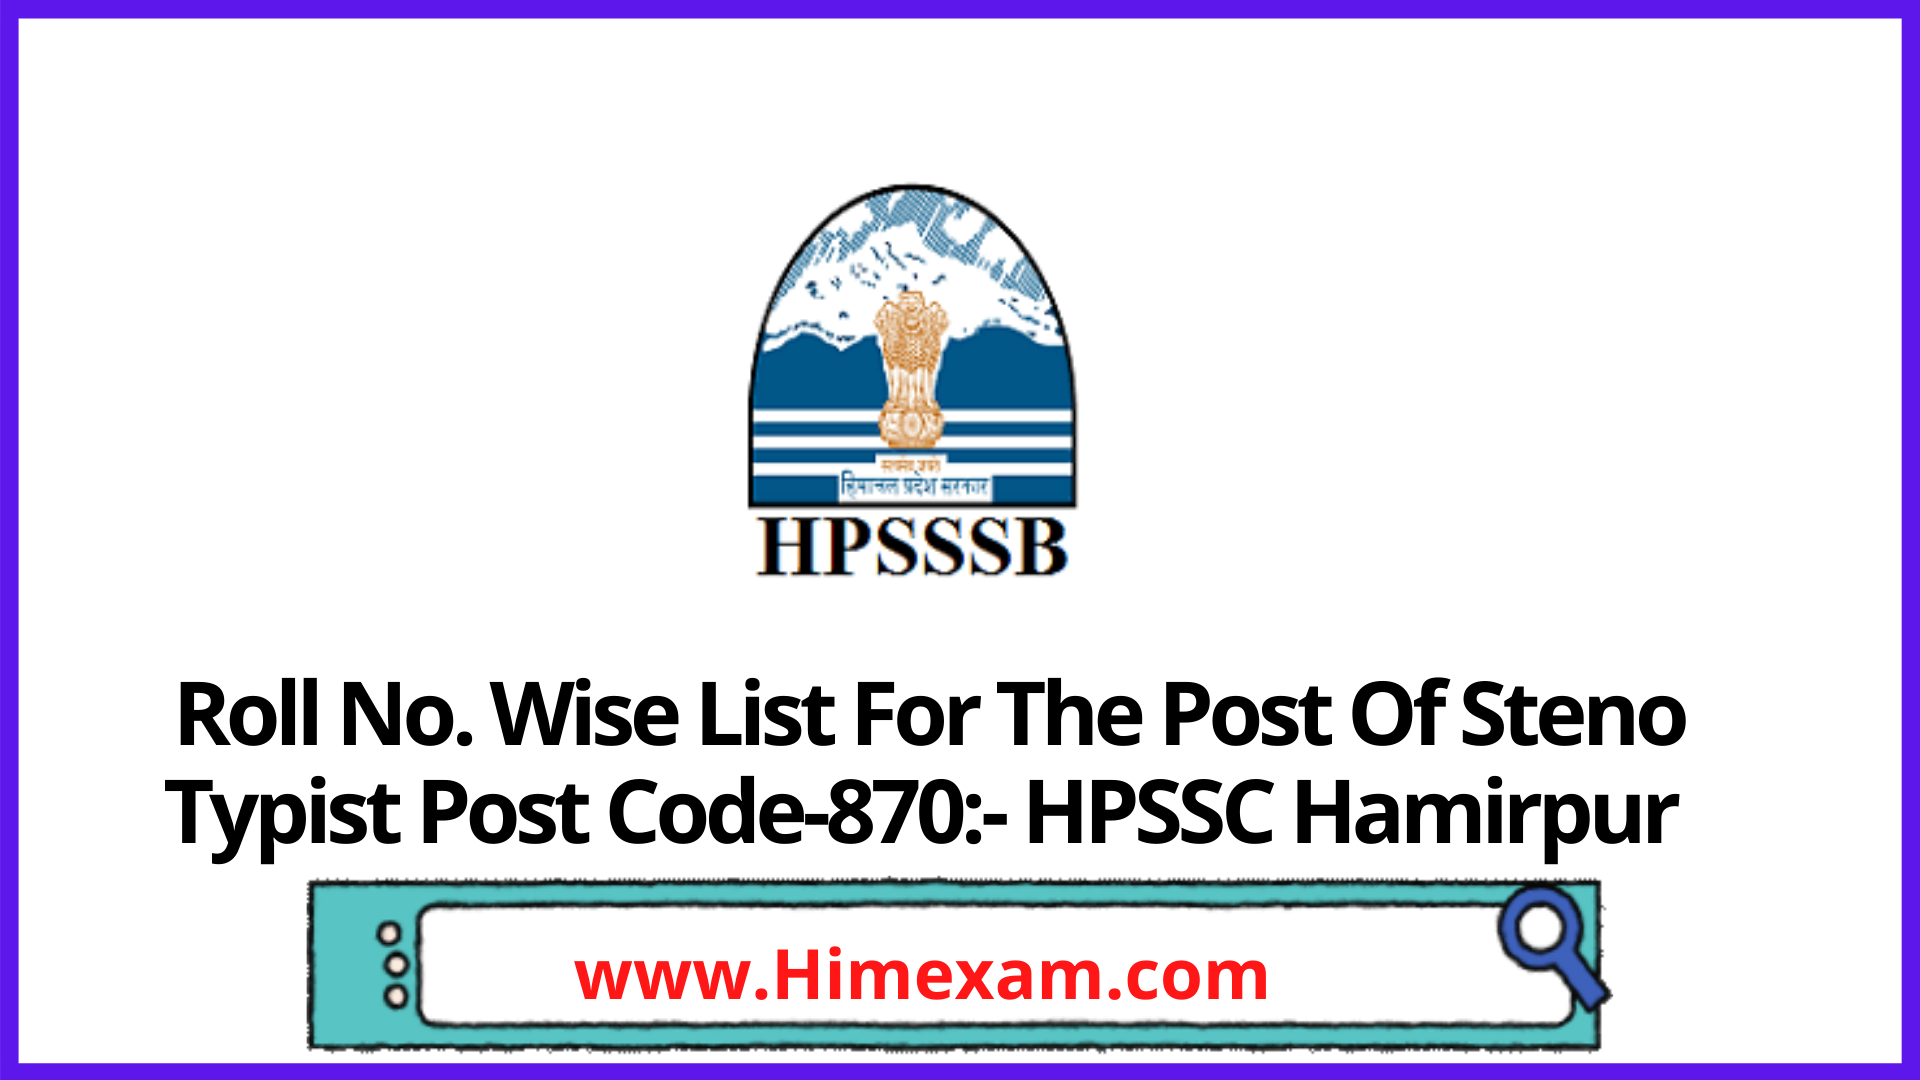 Roll No. Wise List For The Post Of Steno Typist Post Code-870:- HPSSC Hamirpur